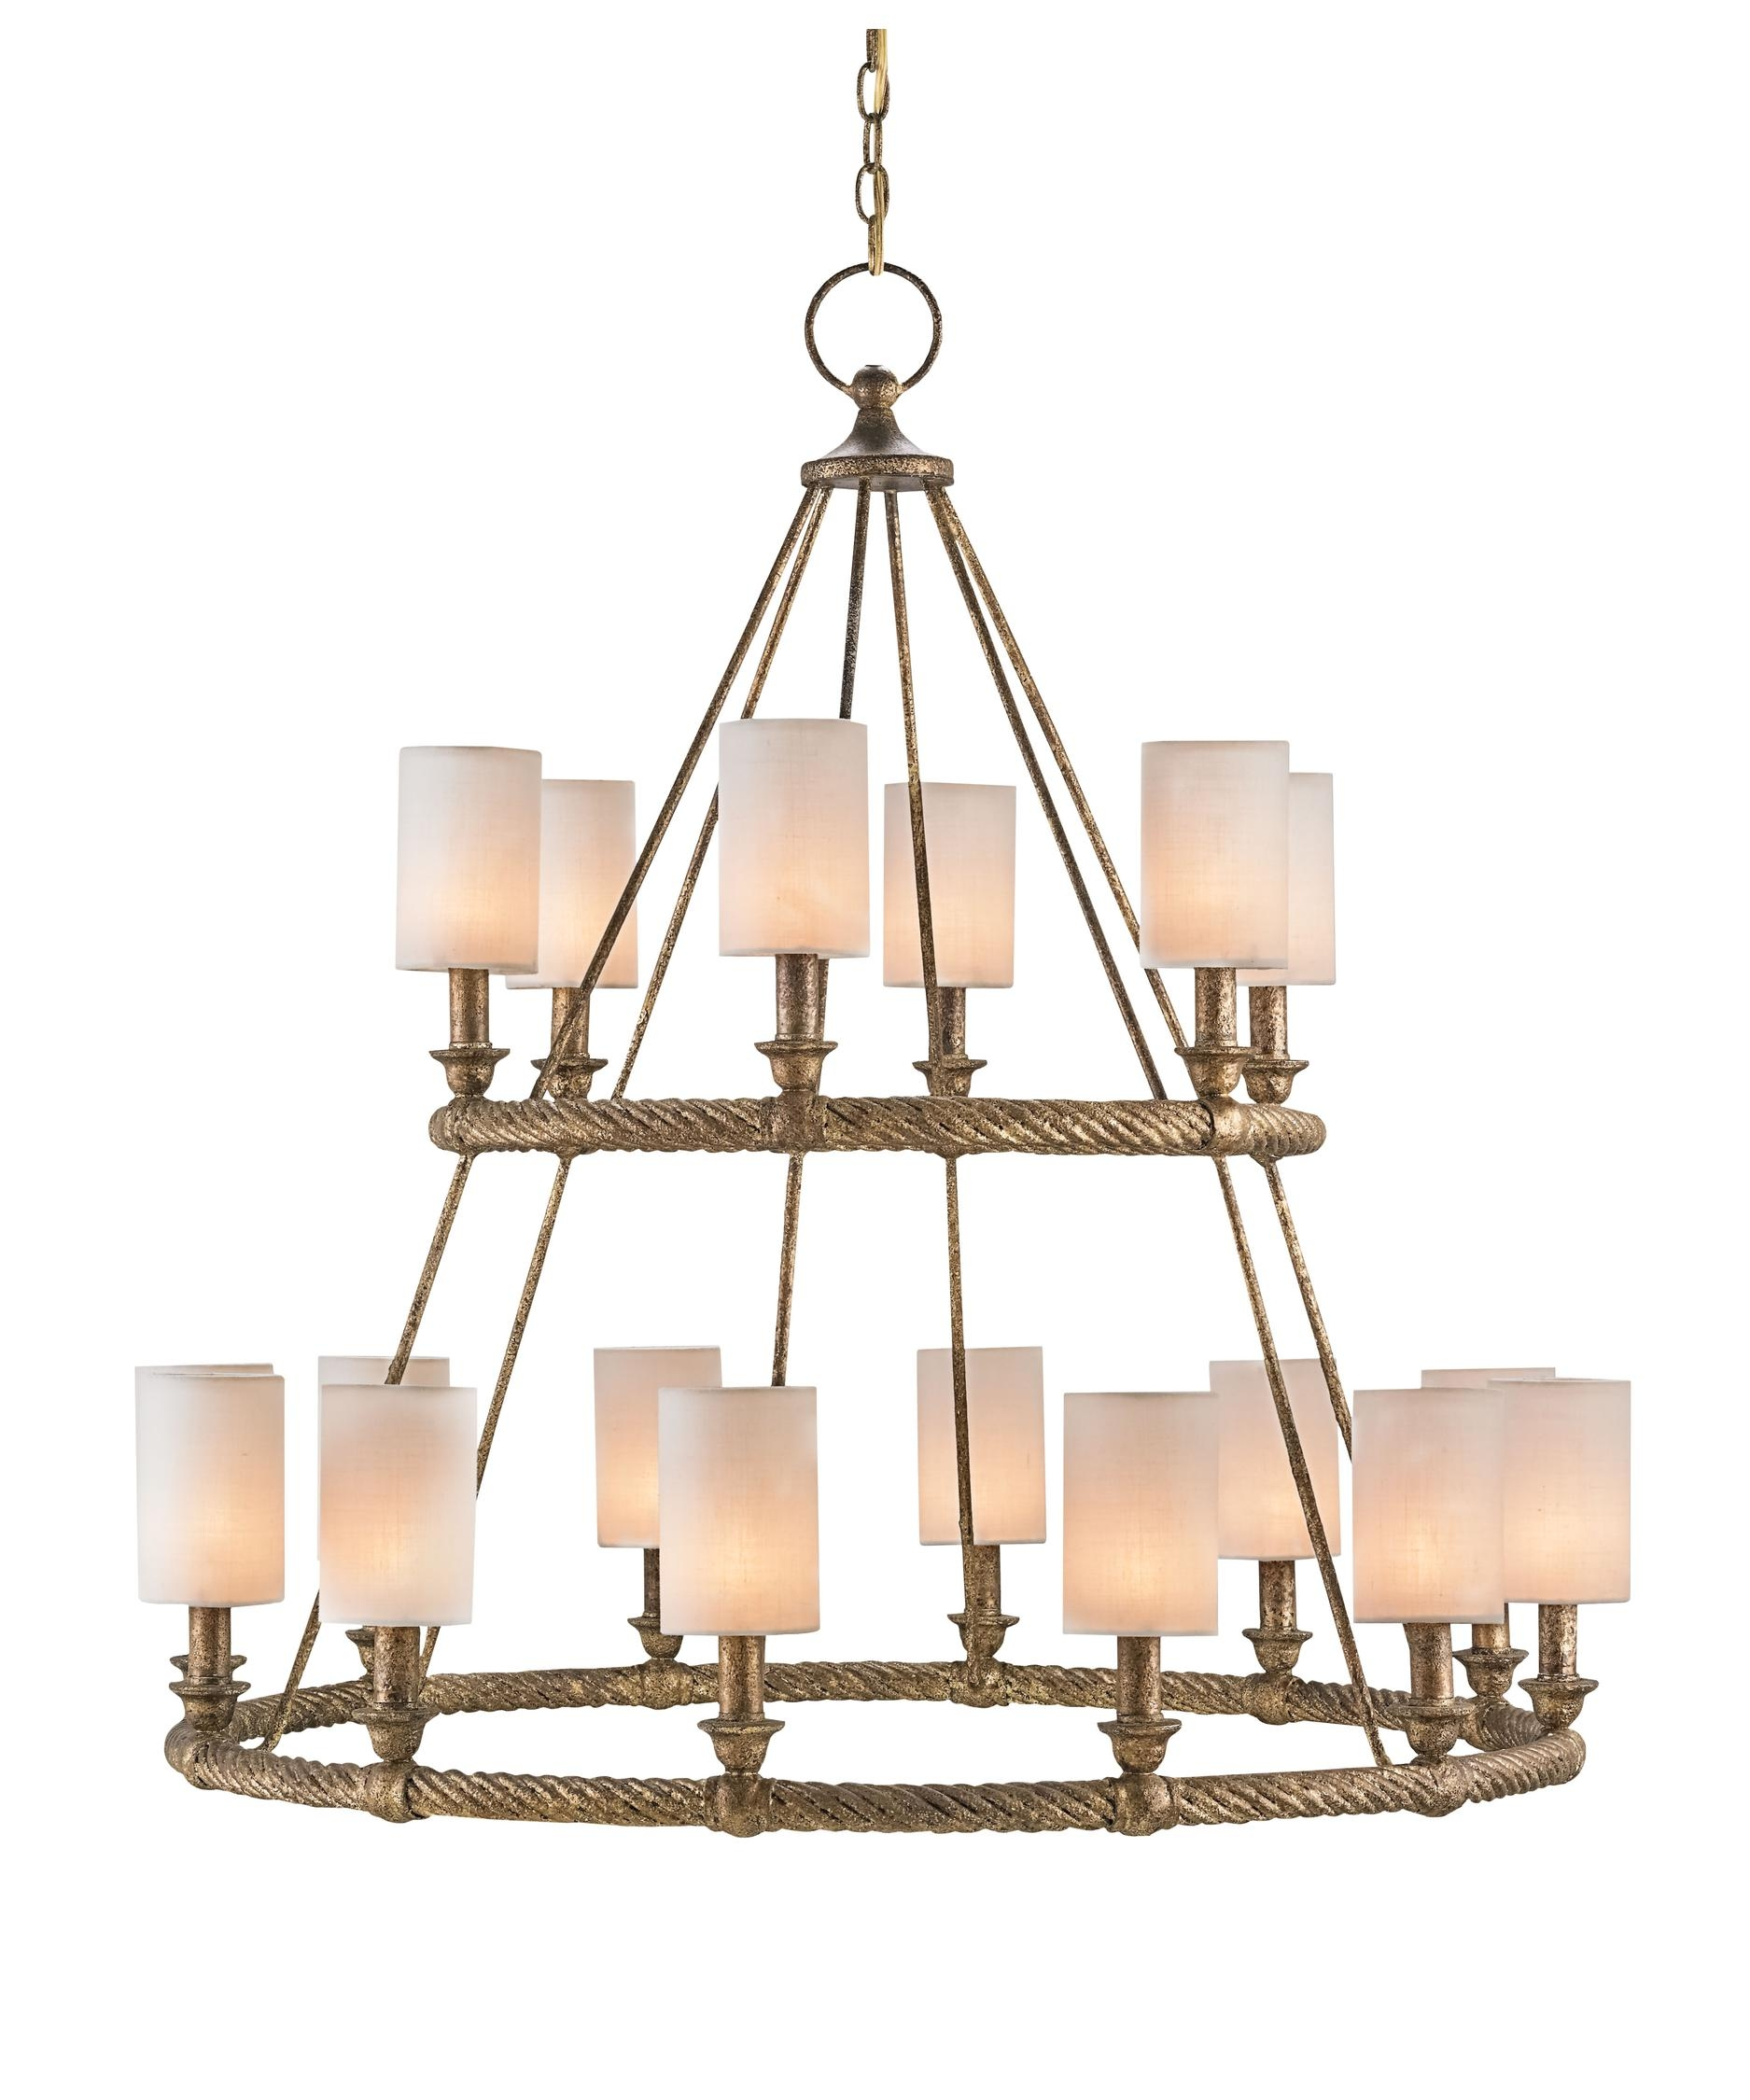 Currey And Company 9844 Westbourne 39 Inch Wide 18 Light With Linen Chandeliers (Image 12 of 25)